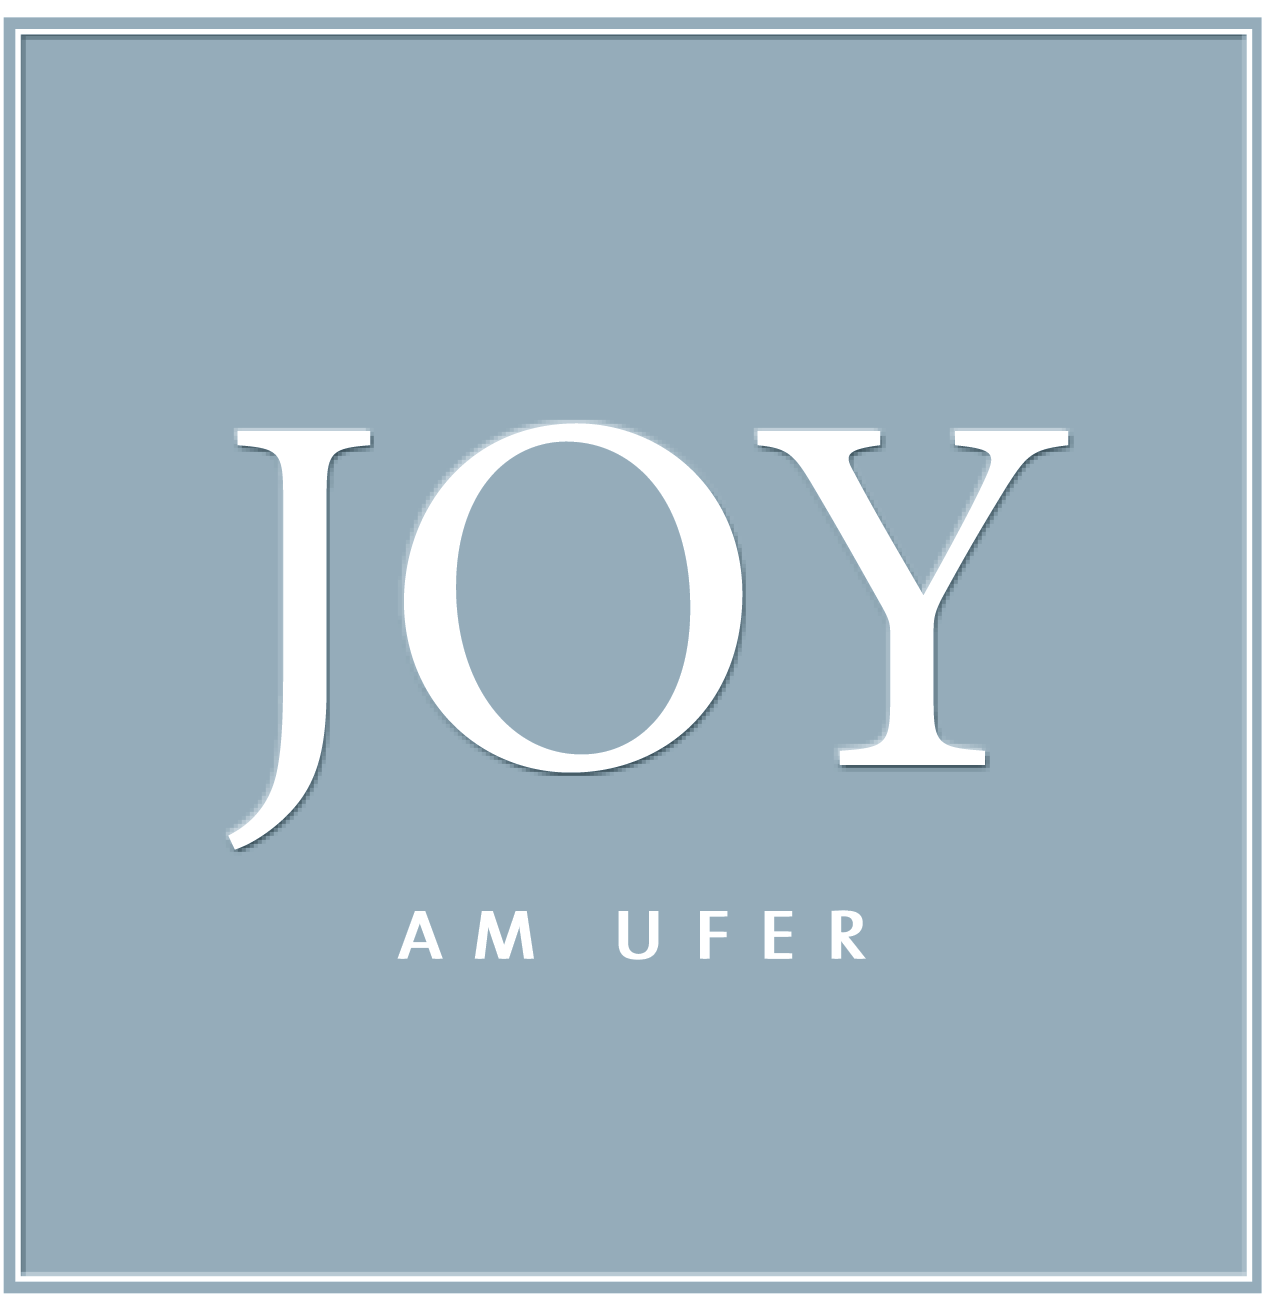 JOY AM UFER